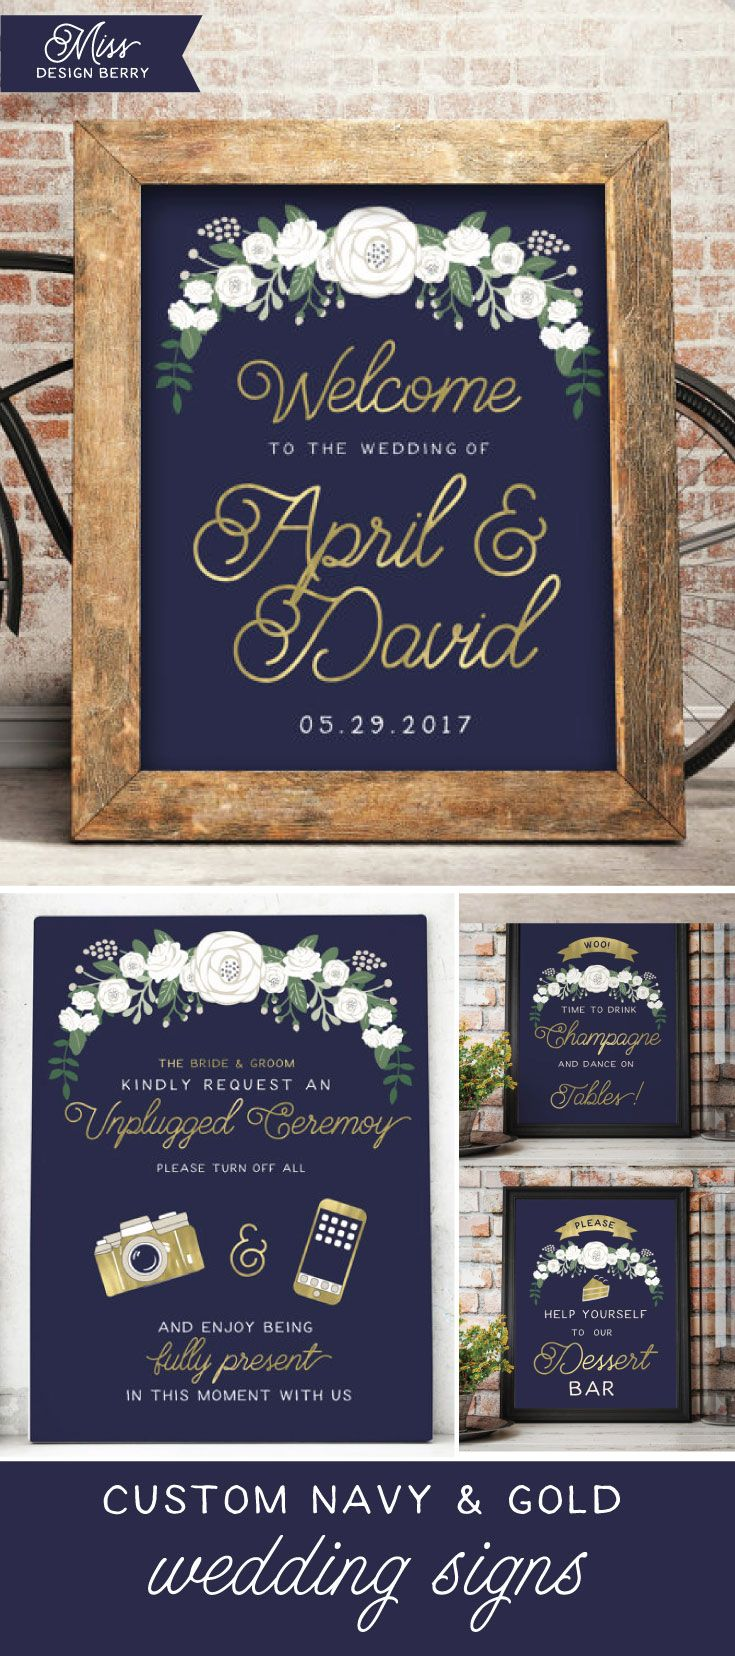 Shop unique and customized Navy and Gold wedding signs, along with 100's of other unique wedding items, only at Miss Design Berry!